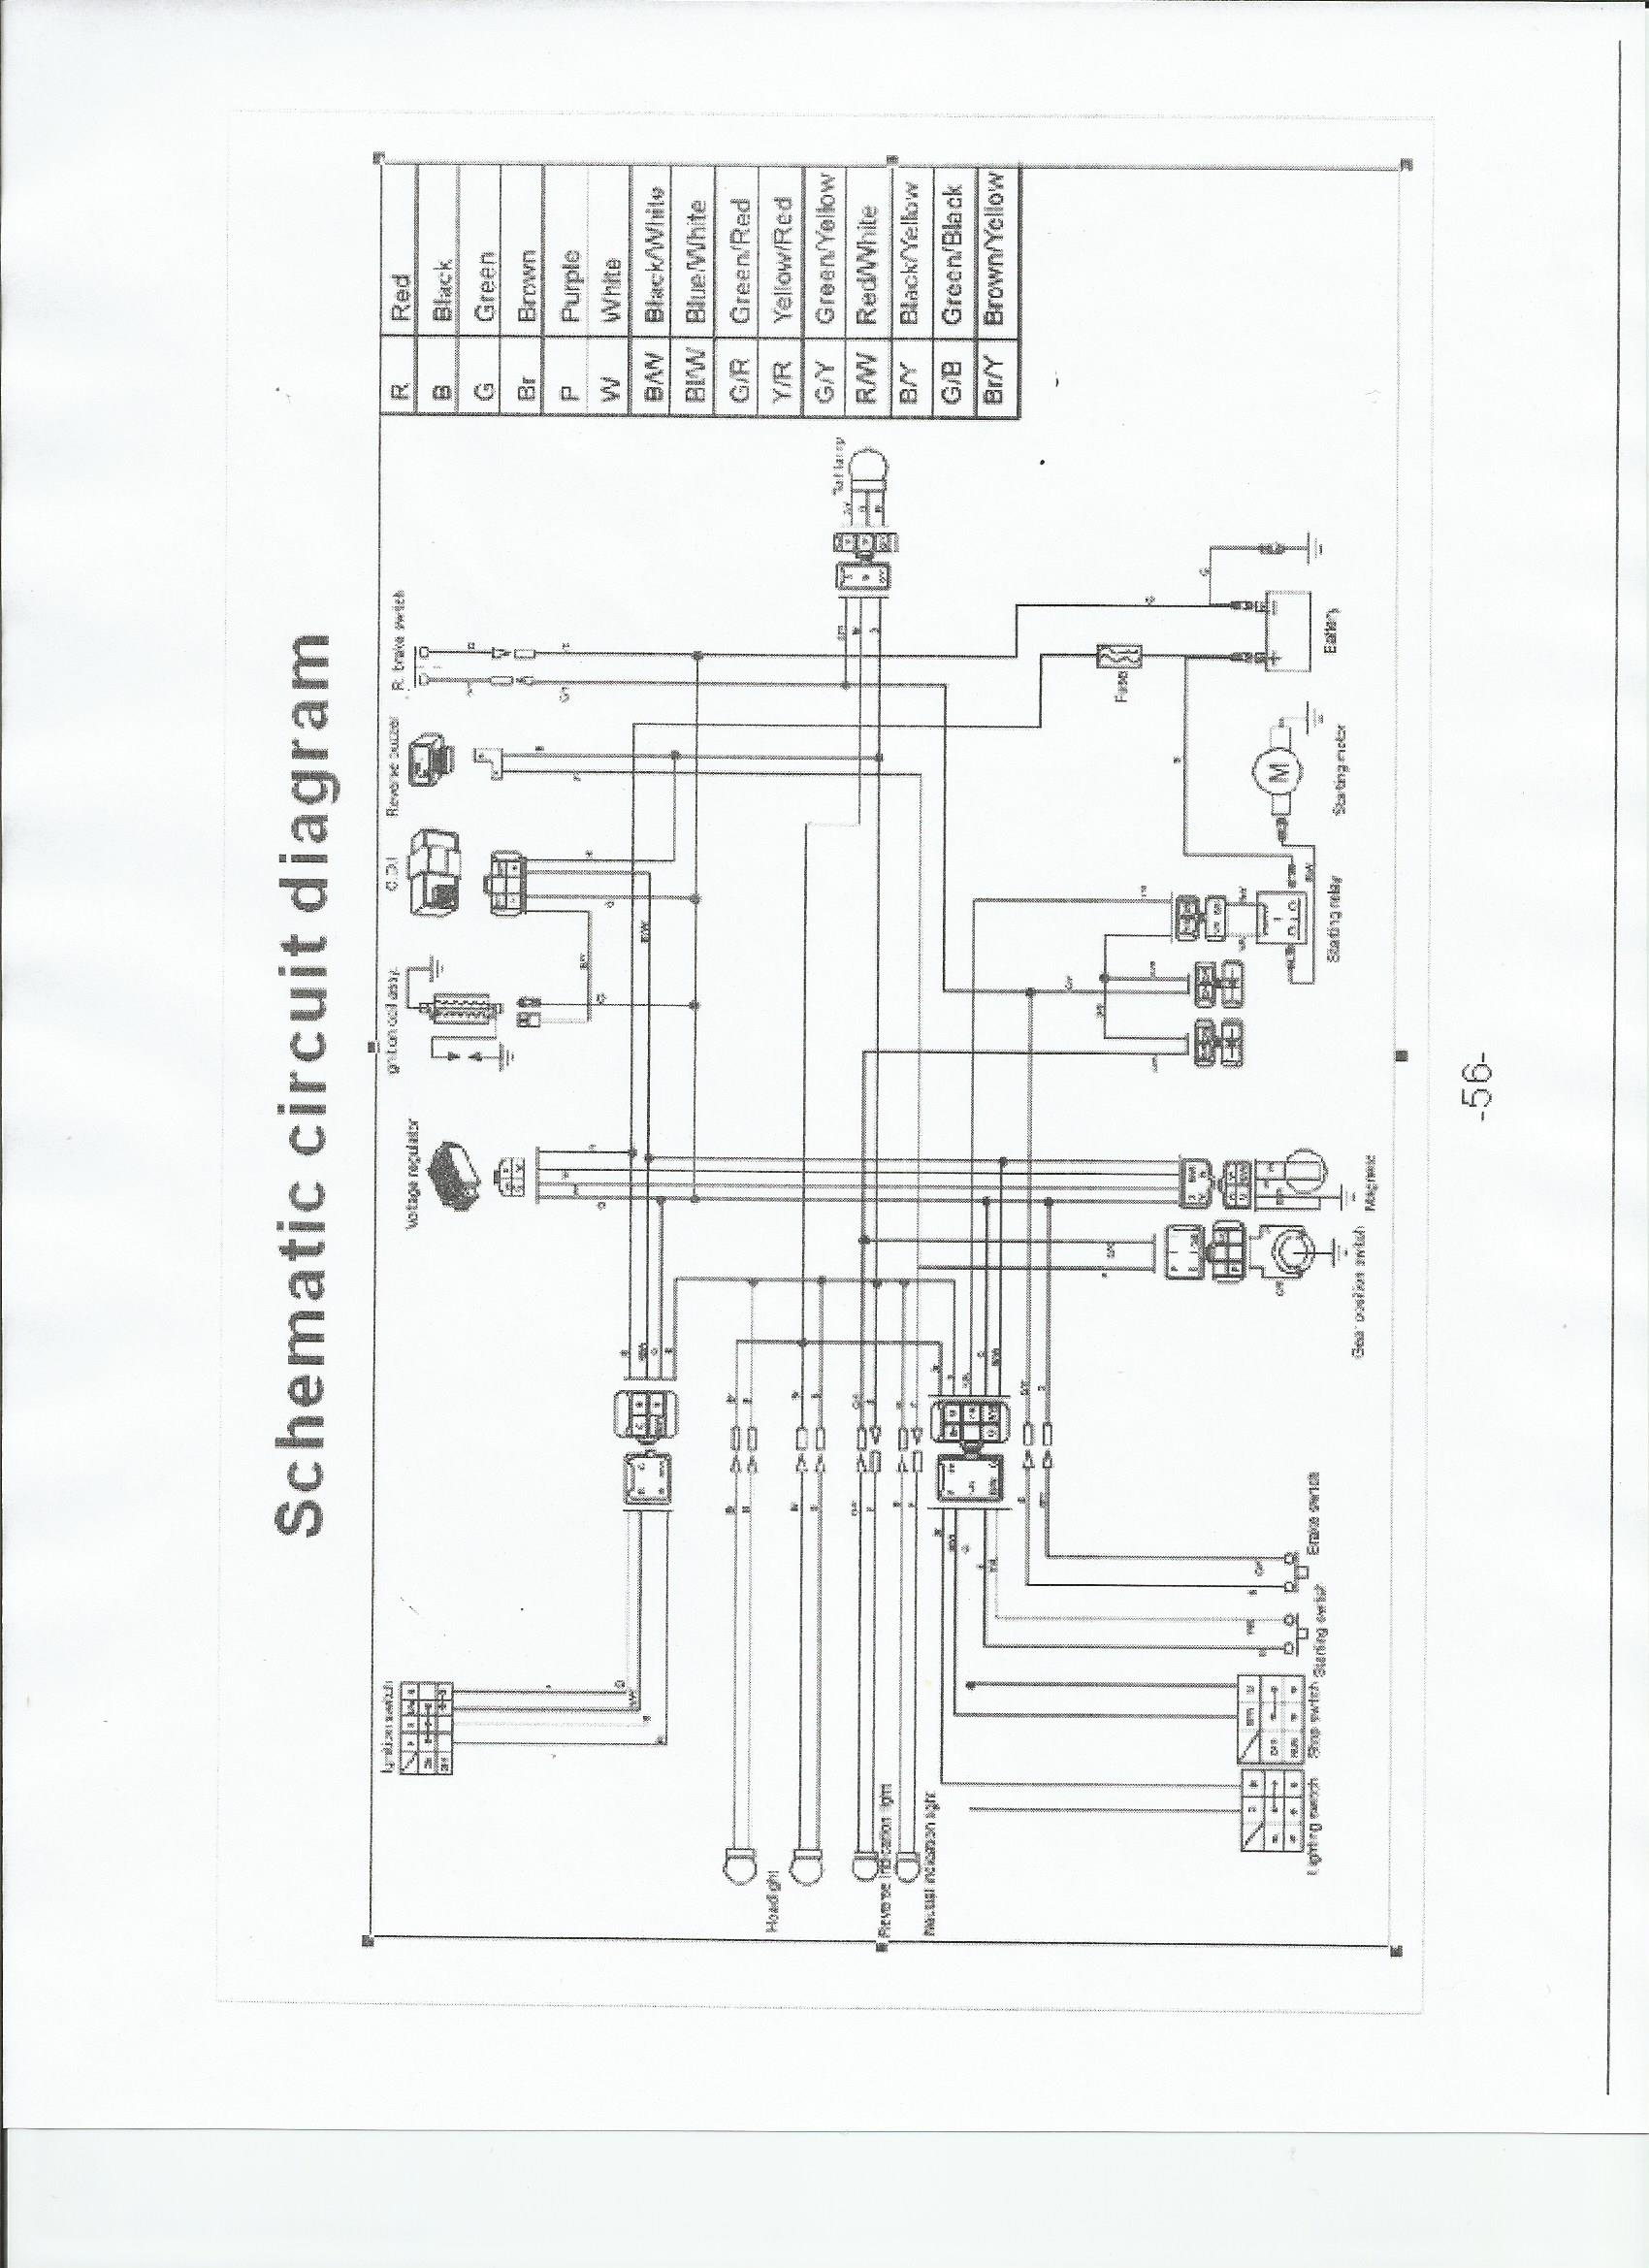 63A80 Tao Tao Gy6 Wiring Diagram | Digital Resources on dingo go kart wiring-diagram, chinese quad wiring-diagram, kazuma meerkat 50 wiring, chinese go kart wiring-diagram, kazuma 150 wiring diagram, kazuma 250 wiring diagram, 110 quad wiring-diagram, kazuma cdi ignition wiring diagram, 150cc go kart wiring-diagram, gy6 150cc wiring-diagram, kazuma 90cc parts diagram clutch,